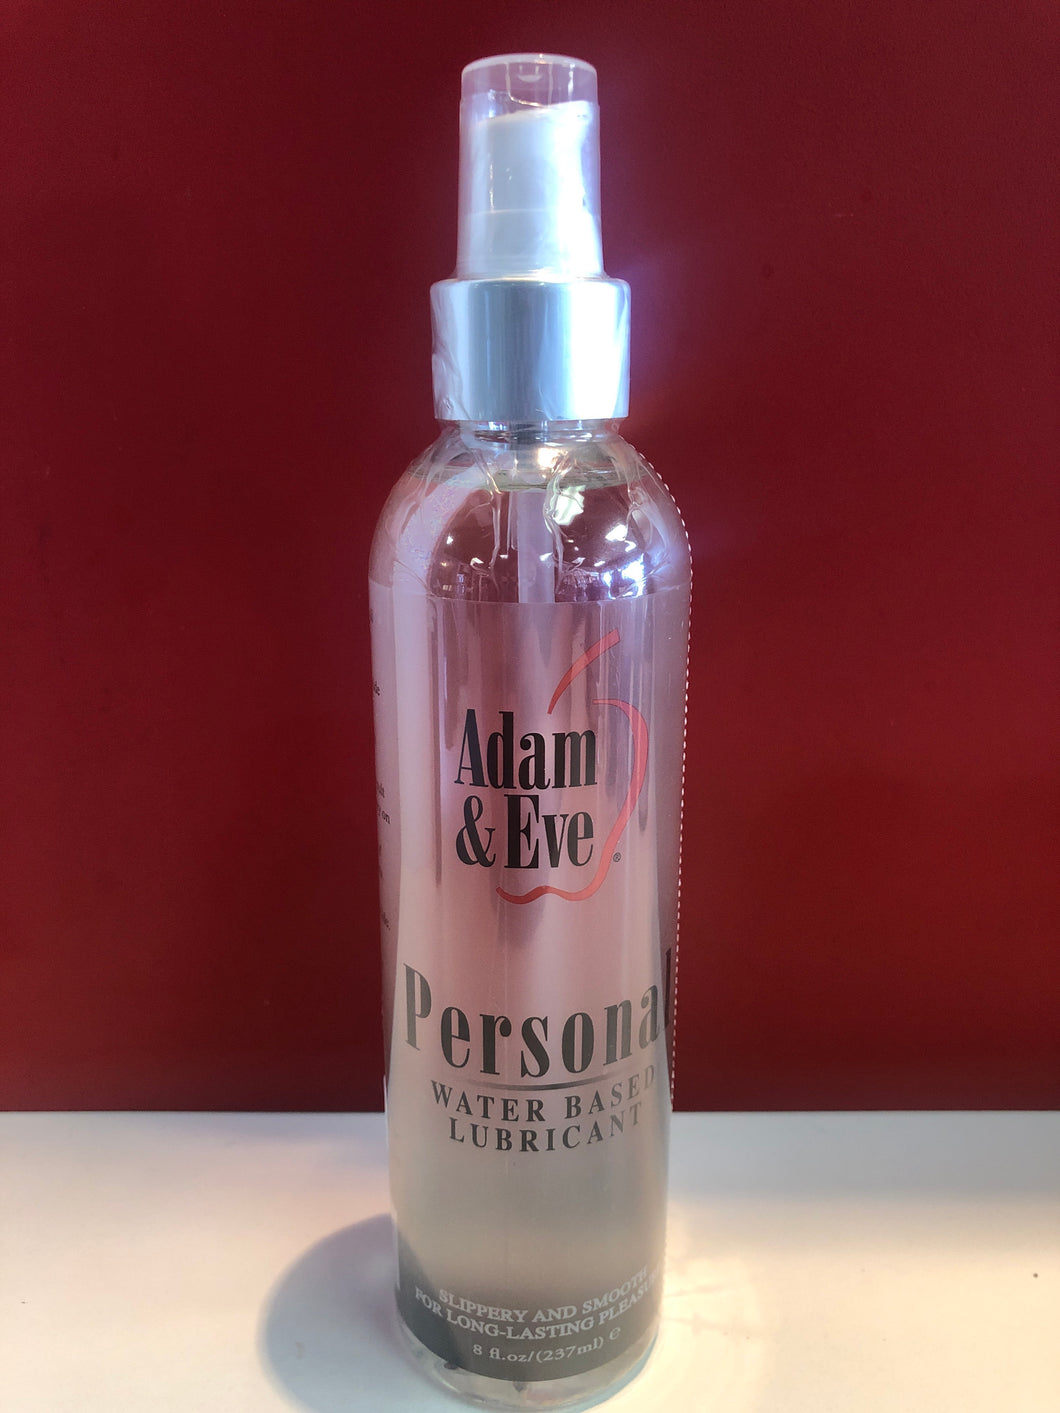 ADAM & EVE PERSON LUBRICANT 8 OZ